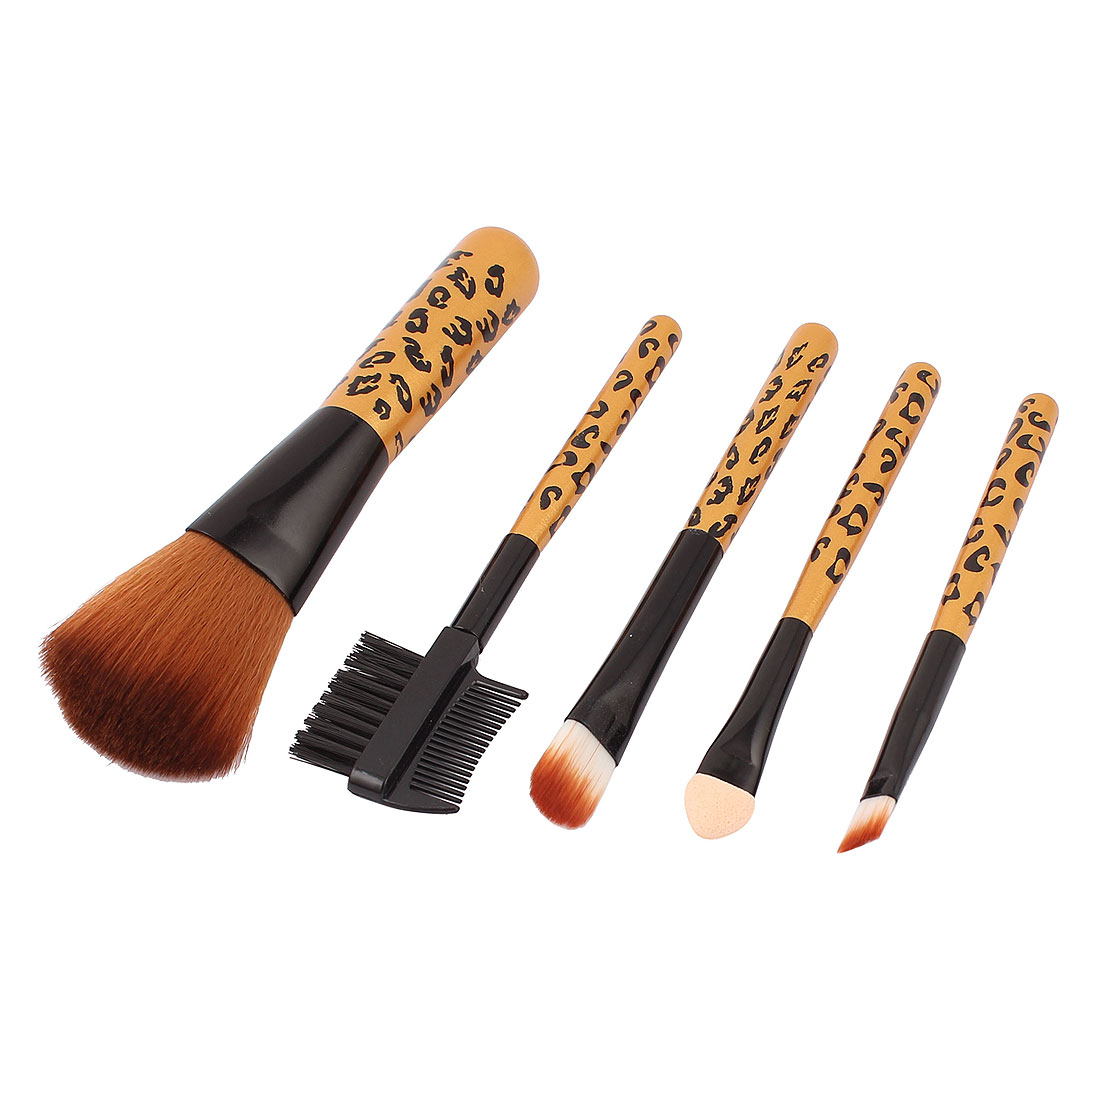 5 in 1 Gold Tone Black Makeup Cosmetic Blush Brush Eyeshadow Applicator Lip Eyebrow Comb Foundation Powder Brushes Set for Woman